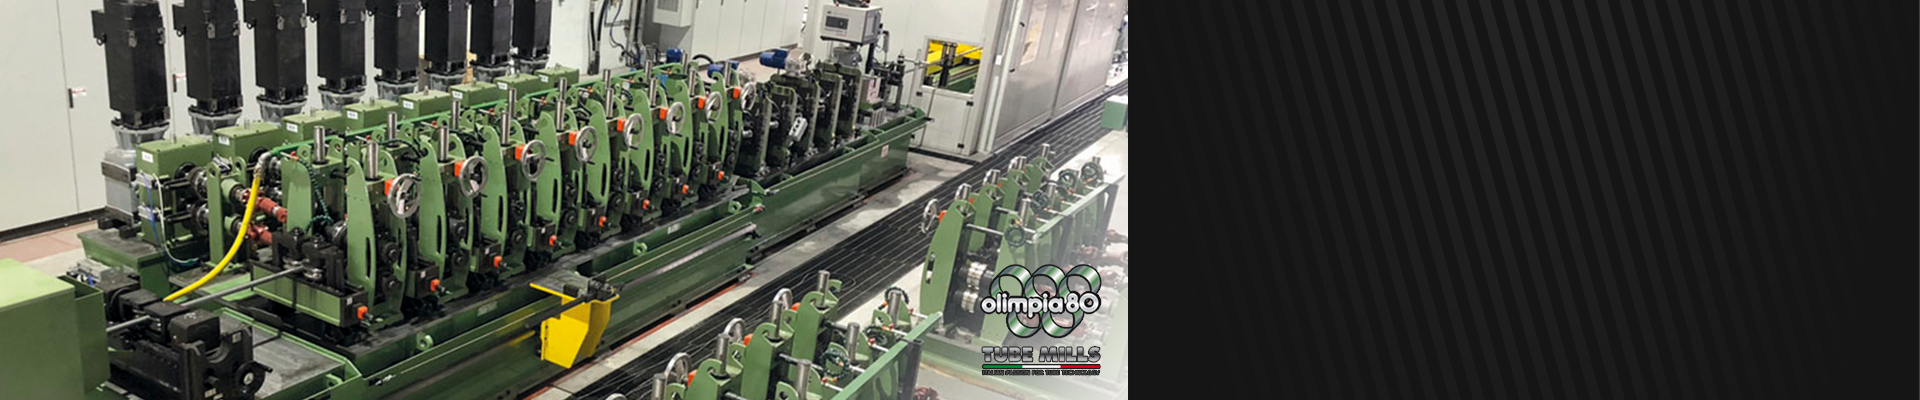 Olimpia 80, Mills for pipe manufacturing.